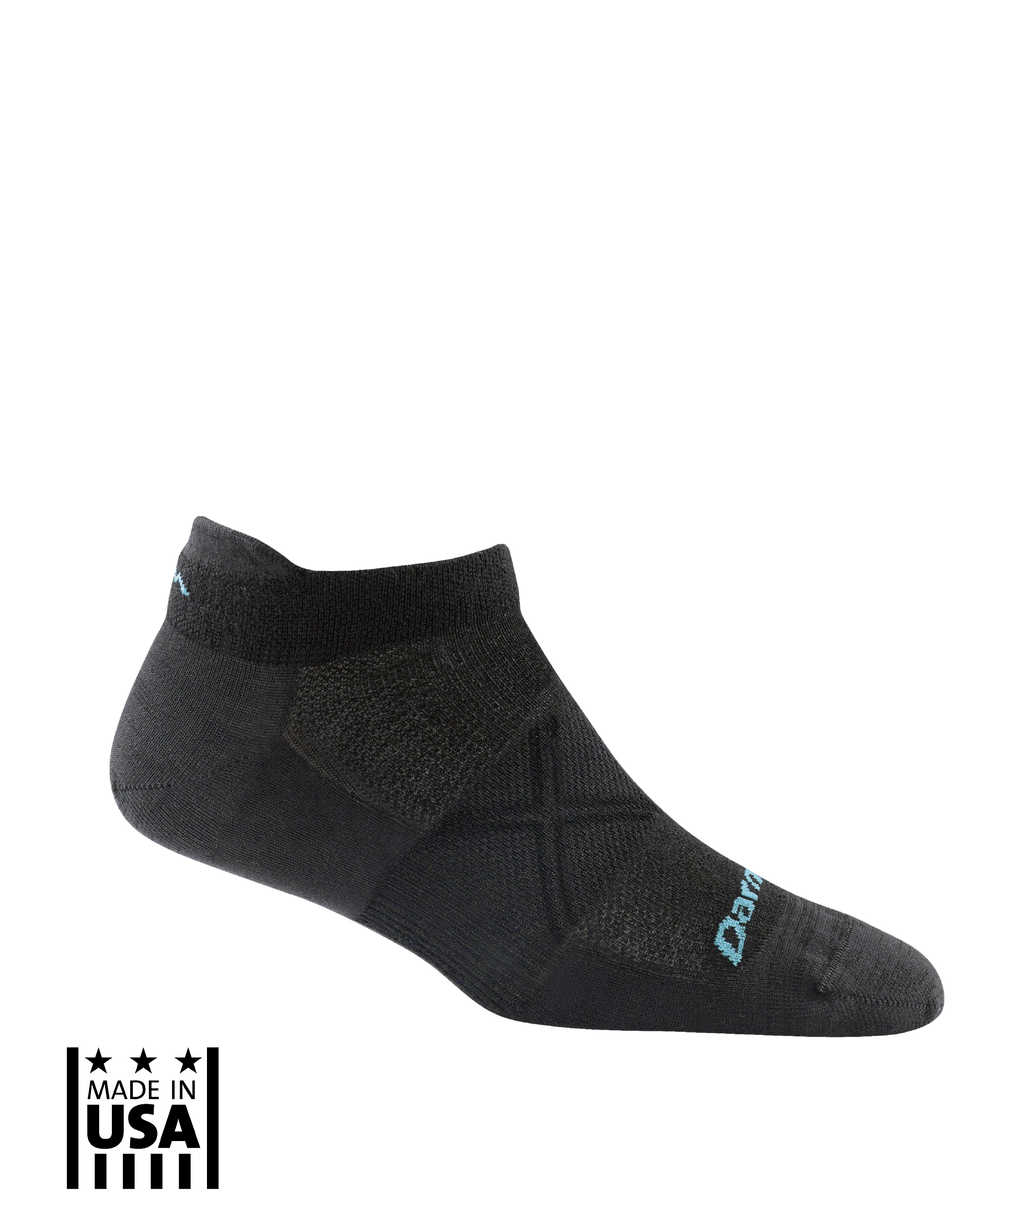 Women's: Vertex No Show Tab Ultra-Light - Black - TruPatriot